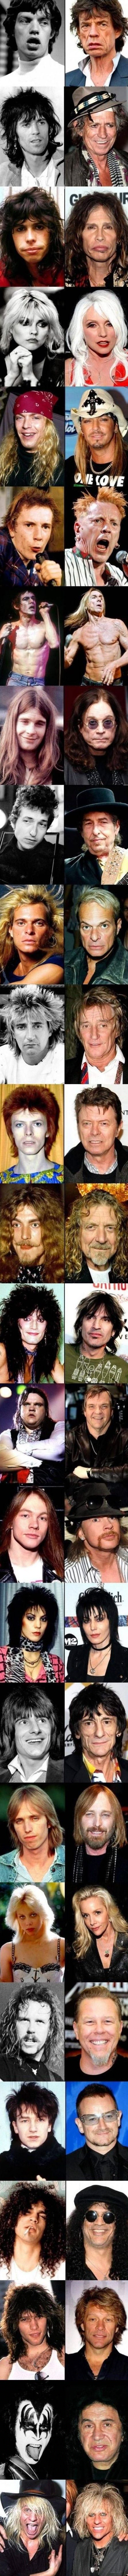 Musical aging timeline — 26 rock stars, then and now...